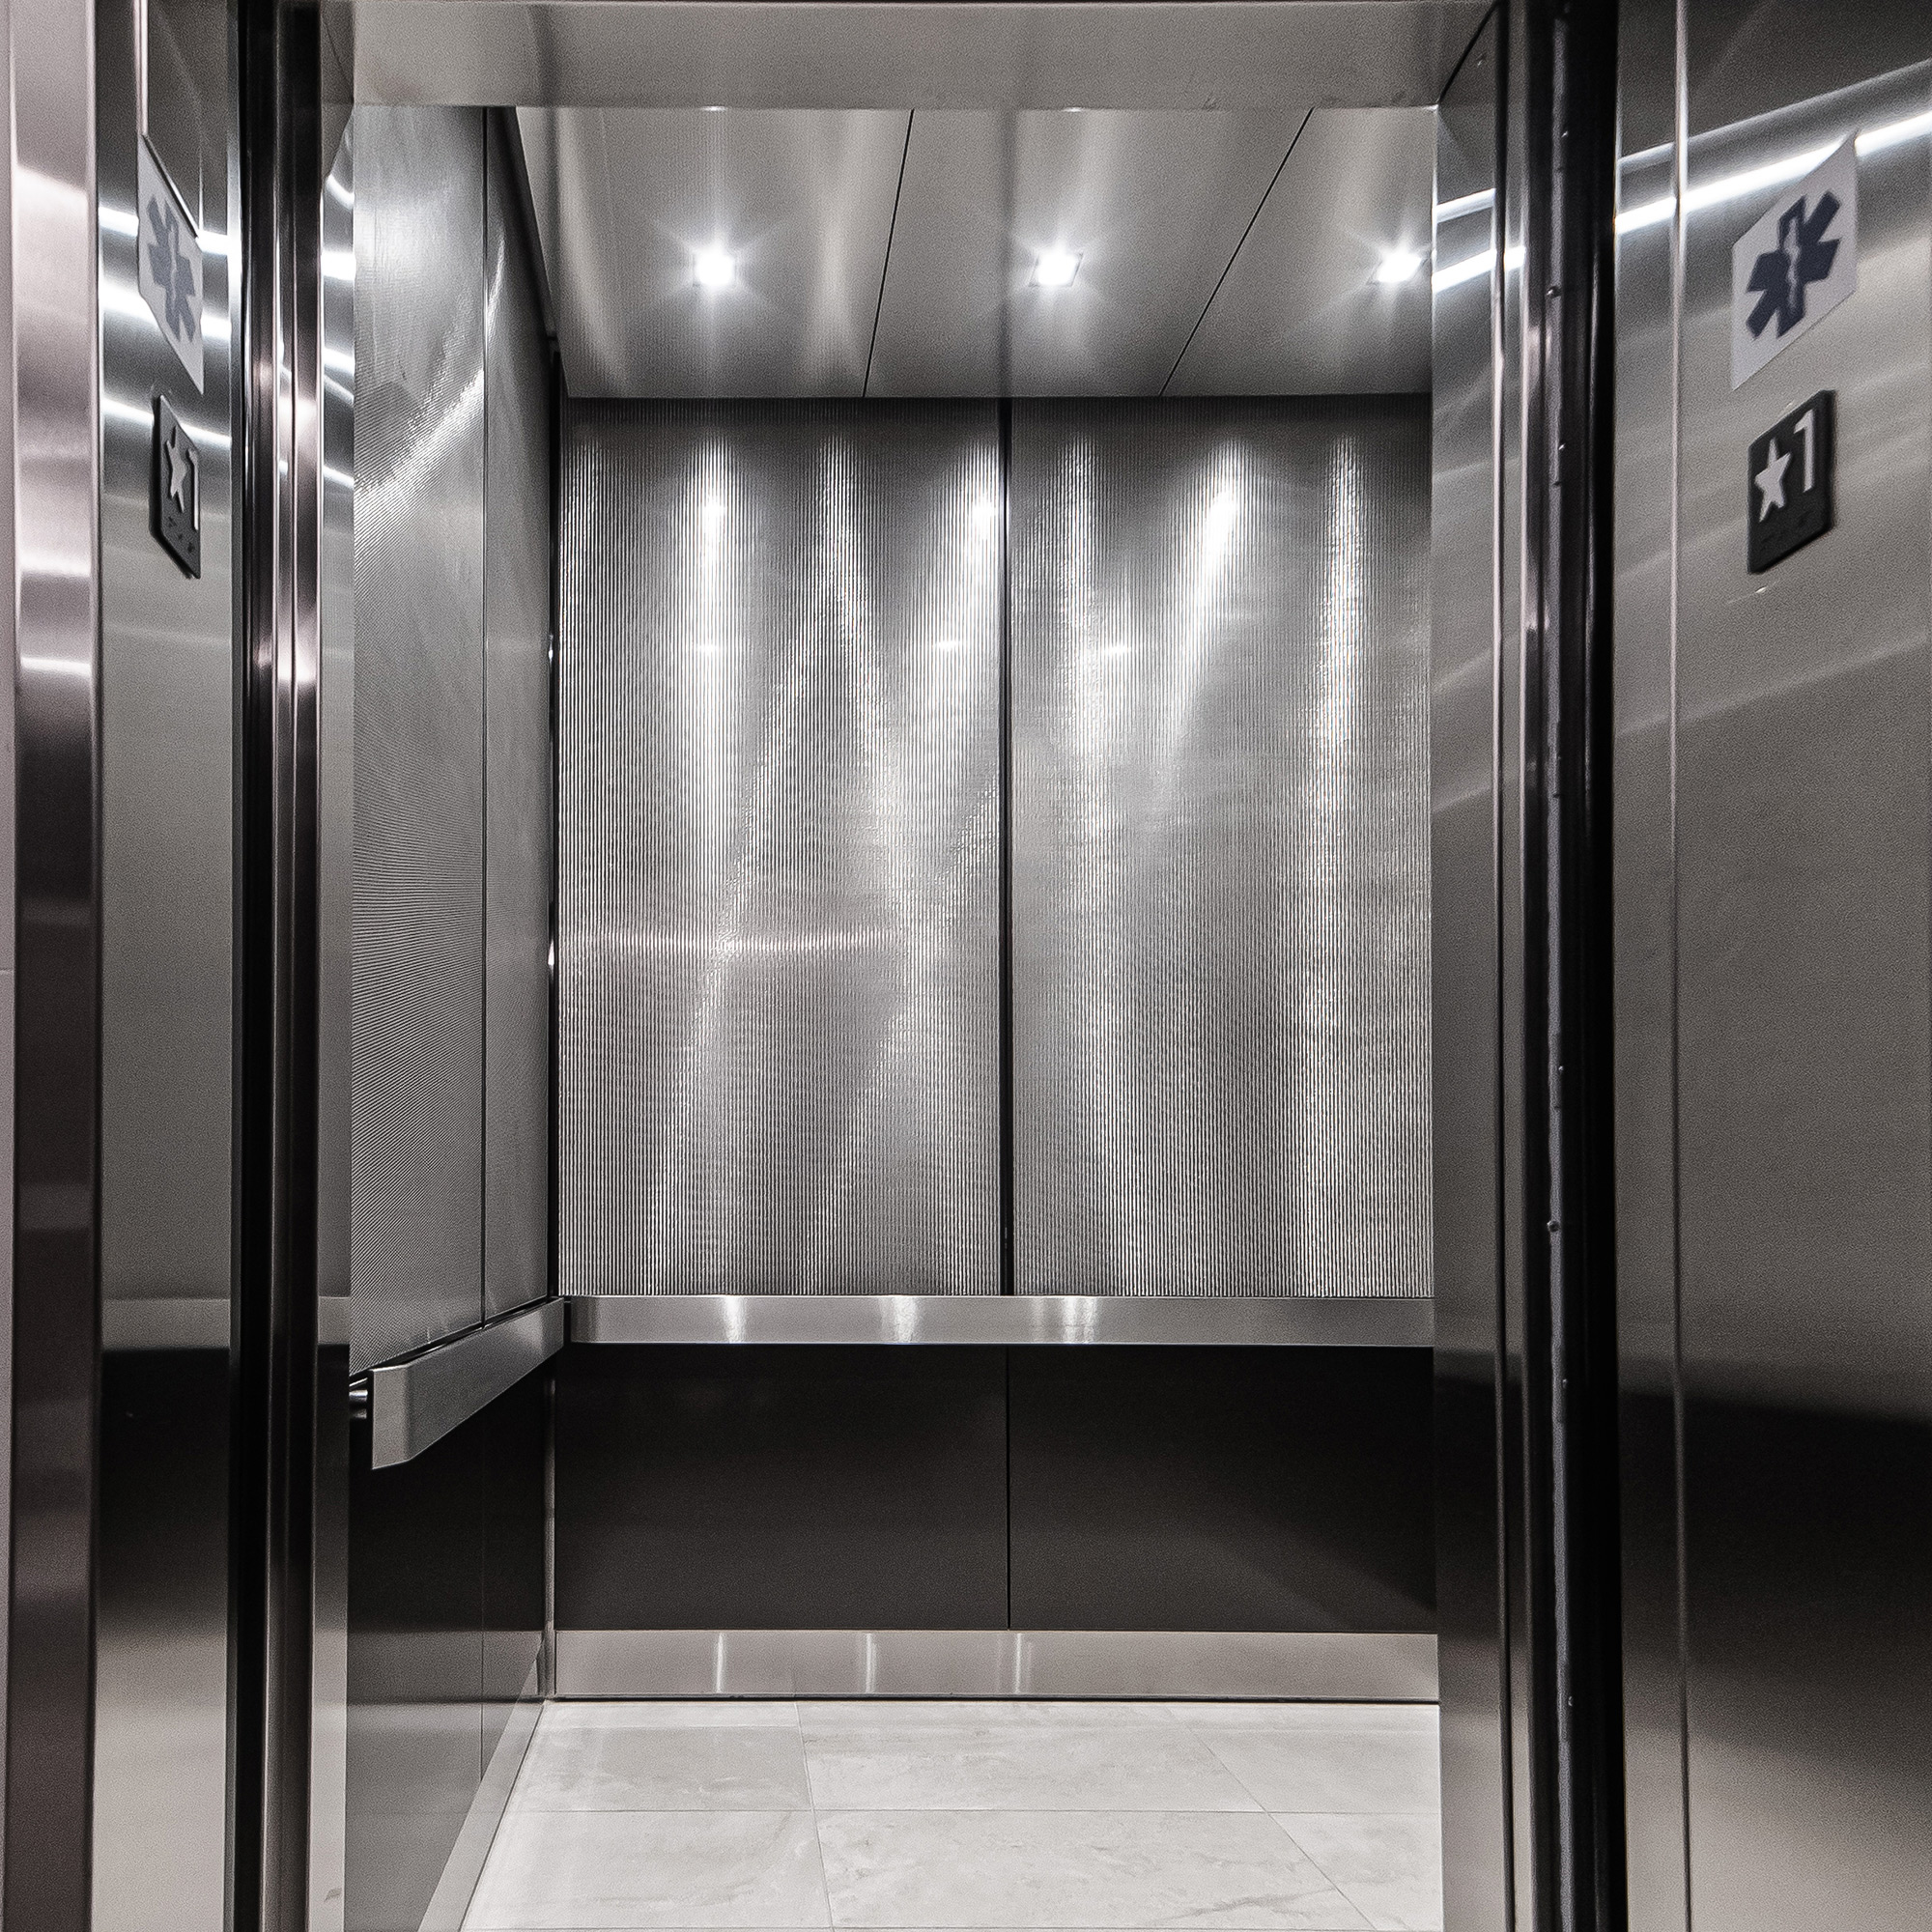 The monochromatic tones of the elevator interior present a modern aesthetic.